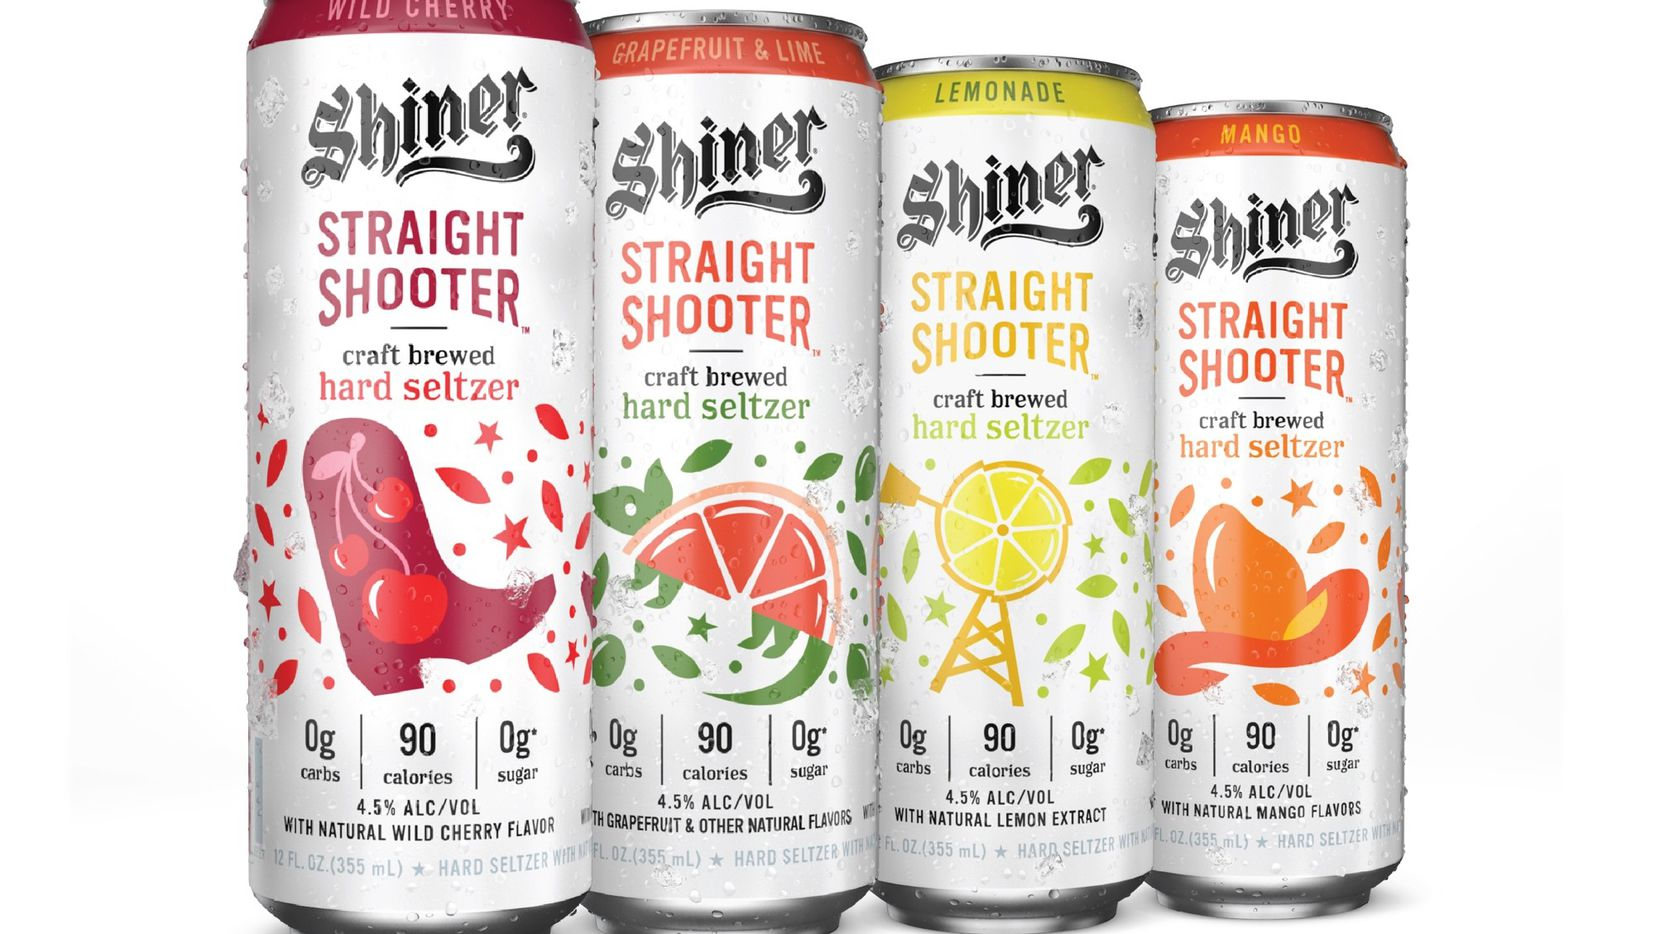 The Spoetzl Brewery in Shiner, Texas announced Tuesday, Aug. 4, that it plans to release a hard seltzer, dubbed Shiner Straight Shooter. It will include four flavors, Wild Cherry, Lemonade, Mango and Grapefruit & Lime, and will hit the Texas market at the end of August.